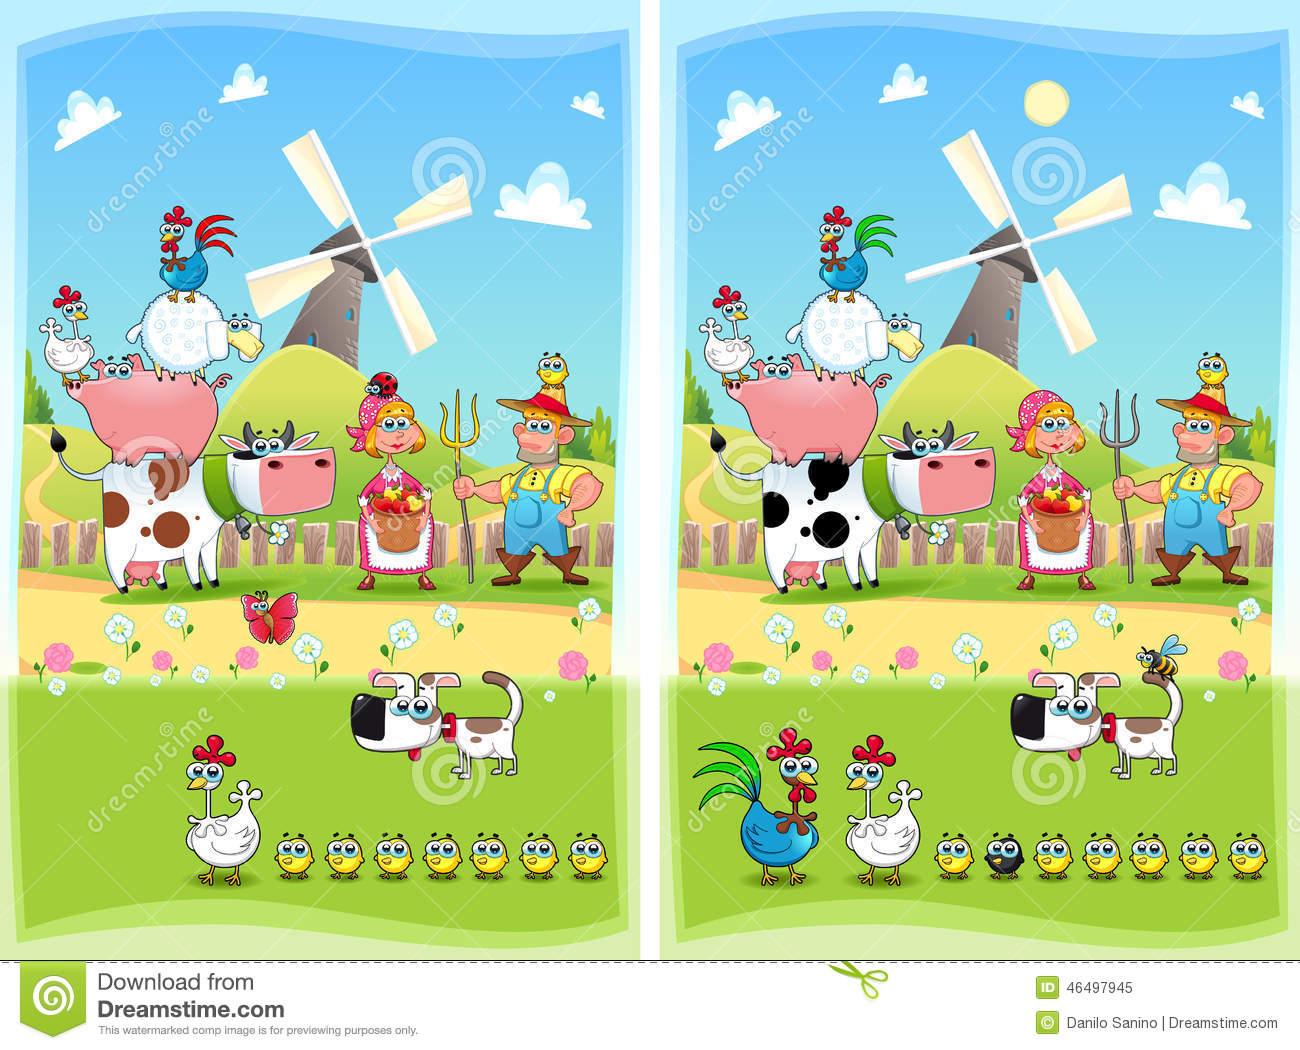 Find differences between two pictures for kids Find 10 Differences - Free online games at m